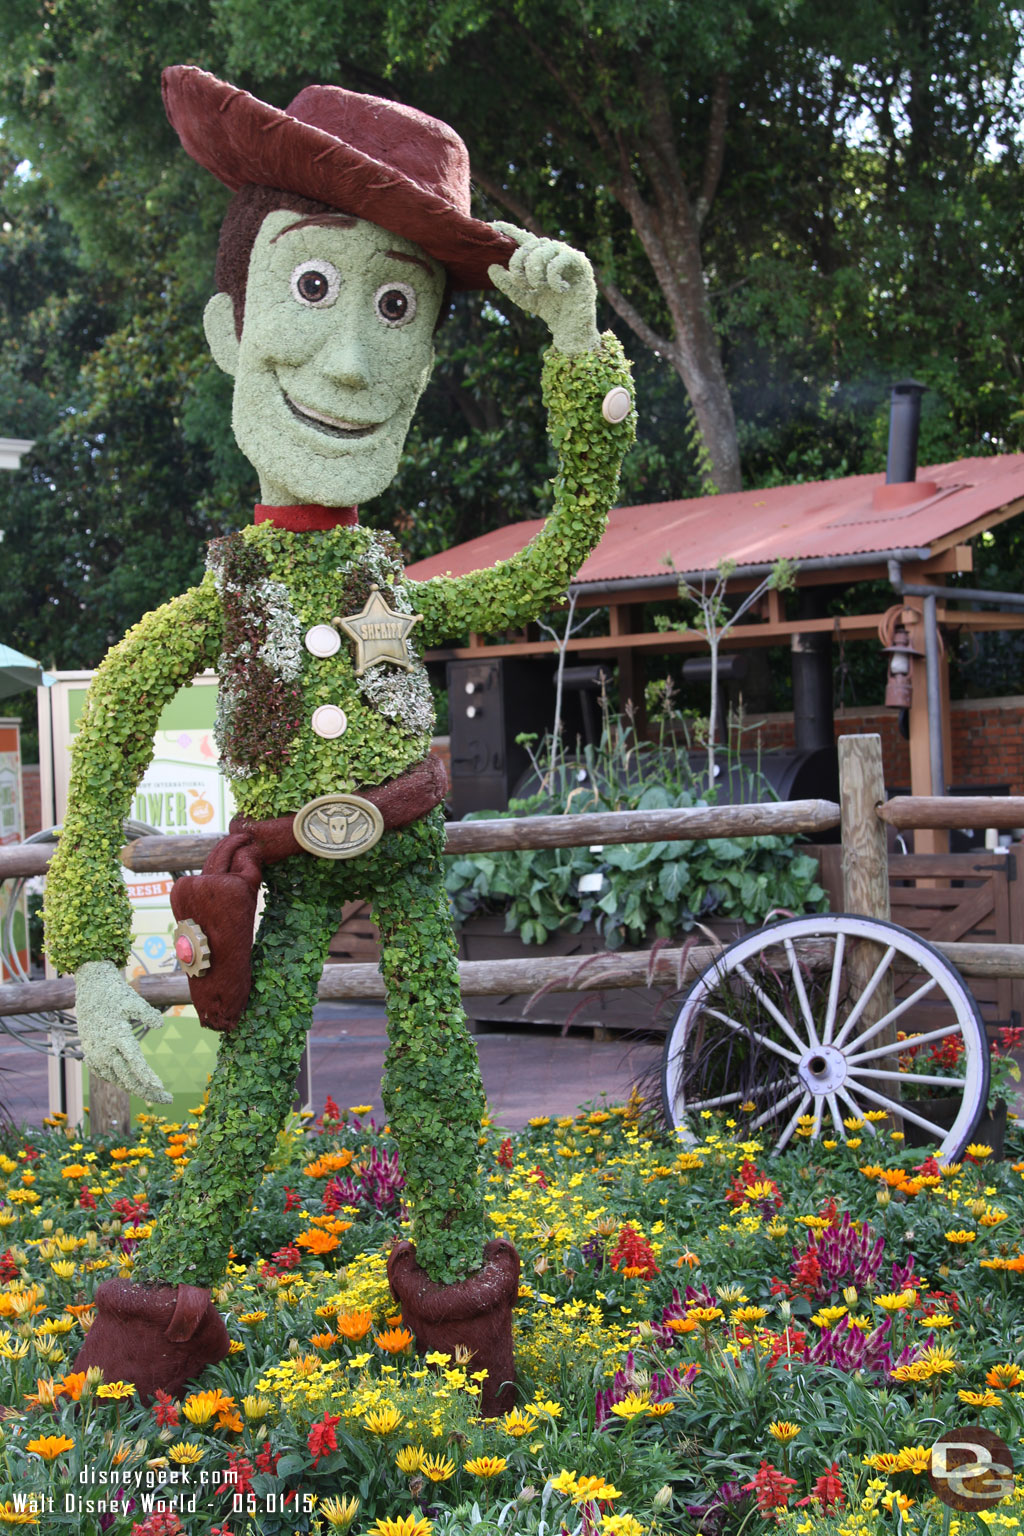 2016 - Woody Topiary at Epcot